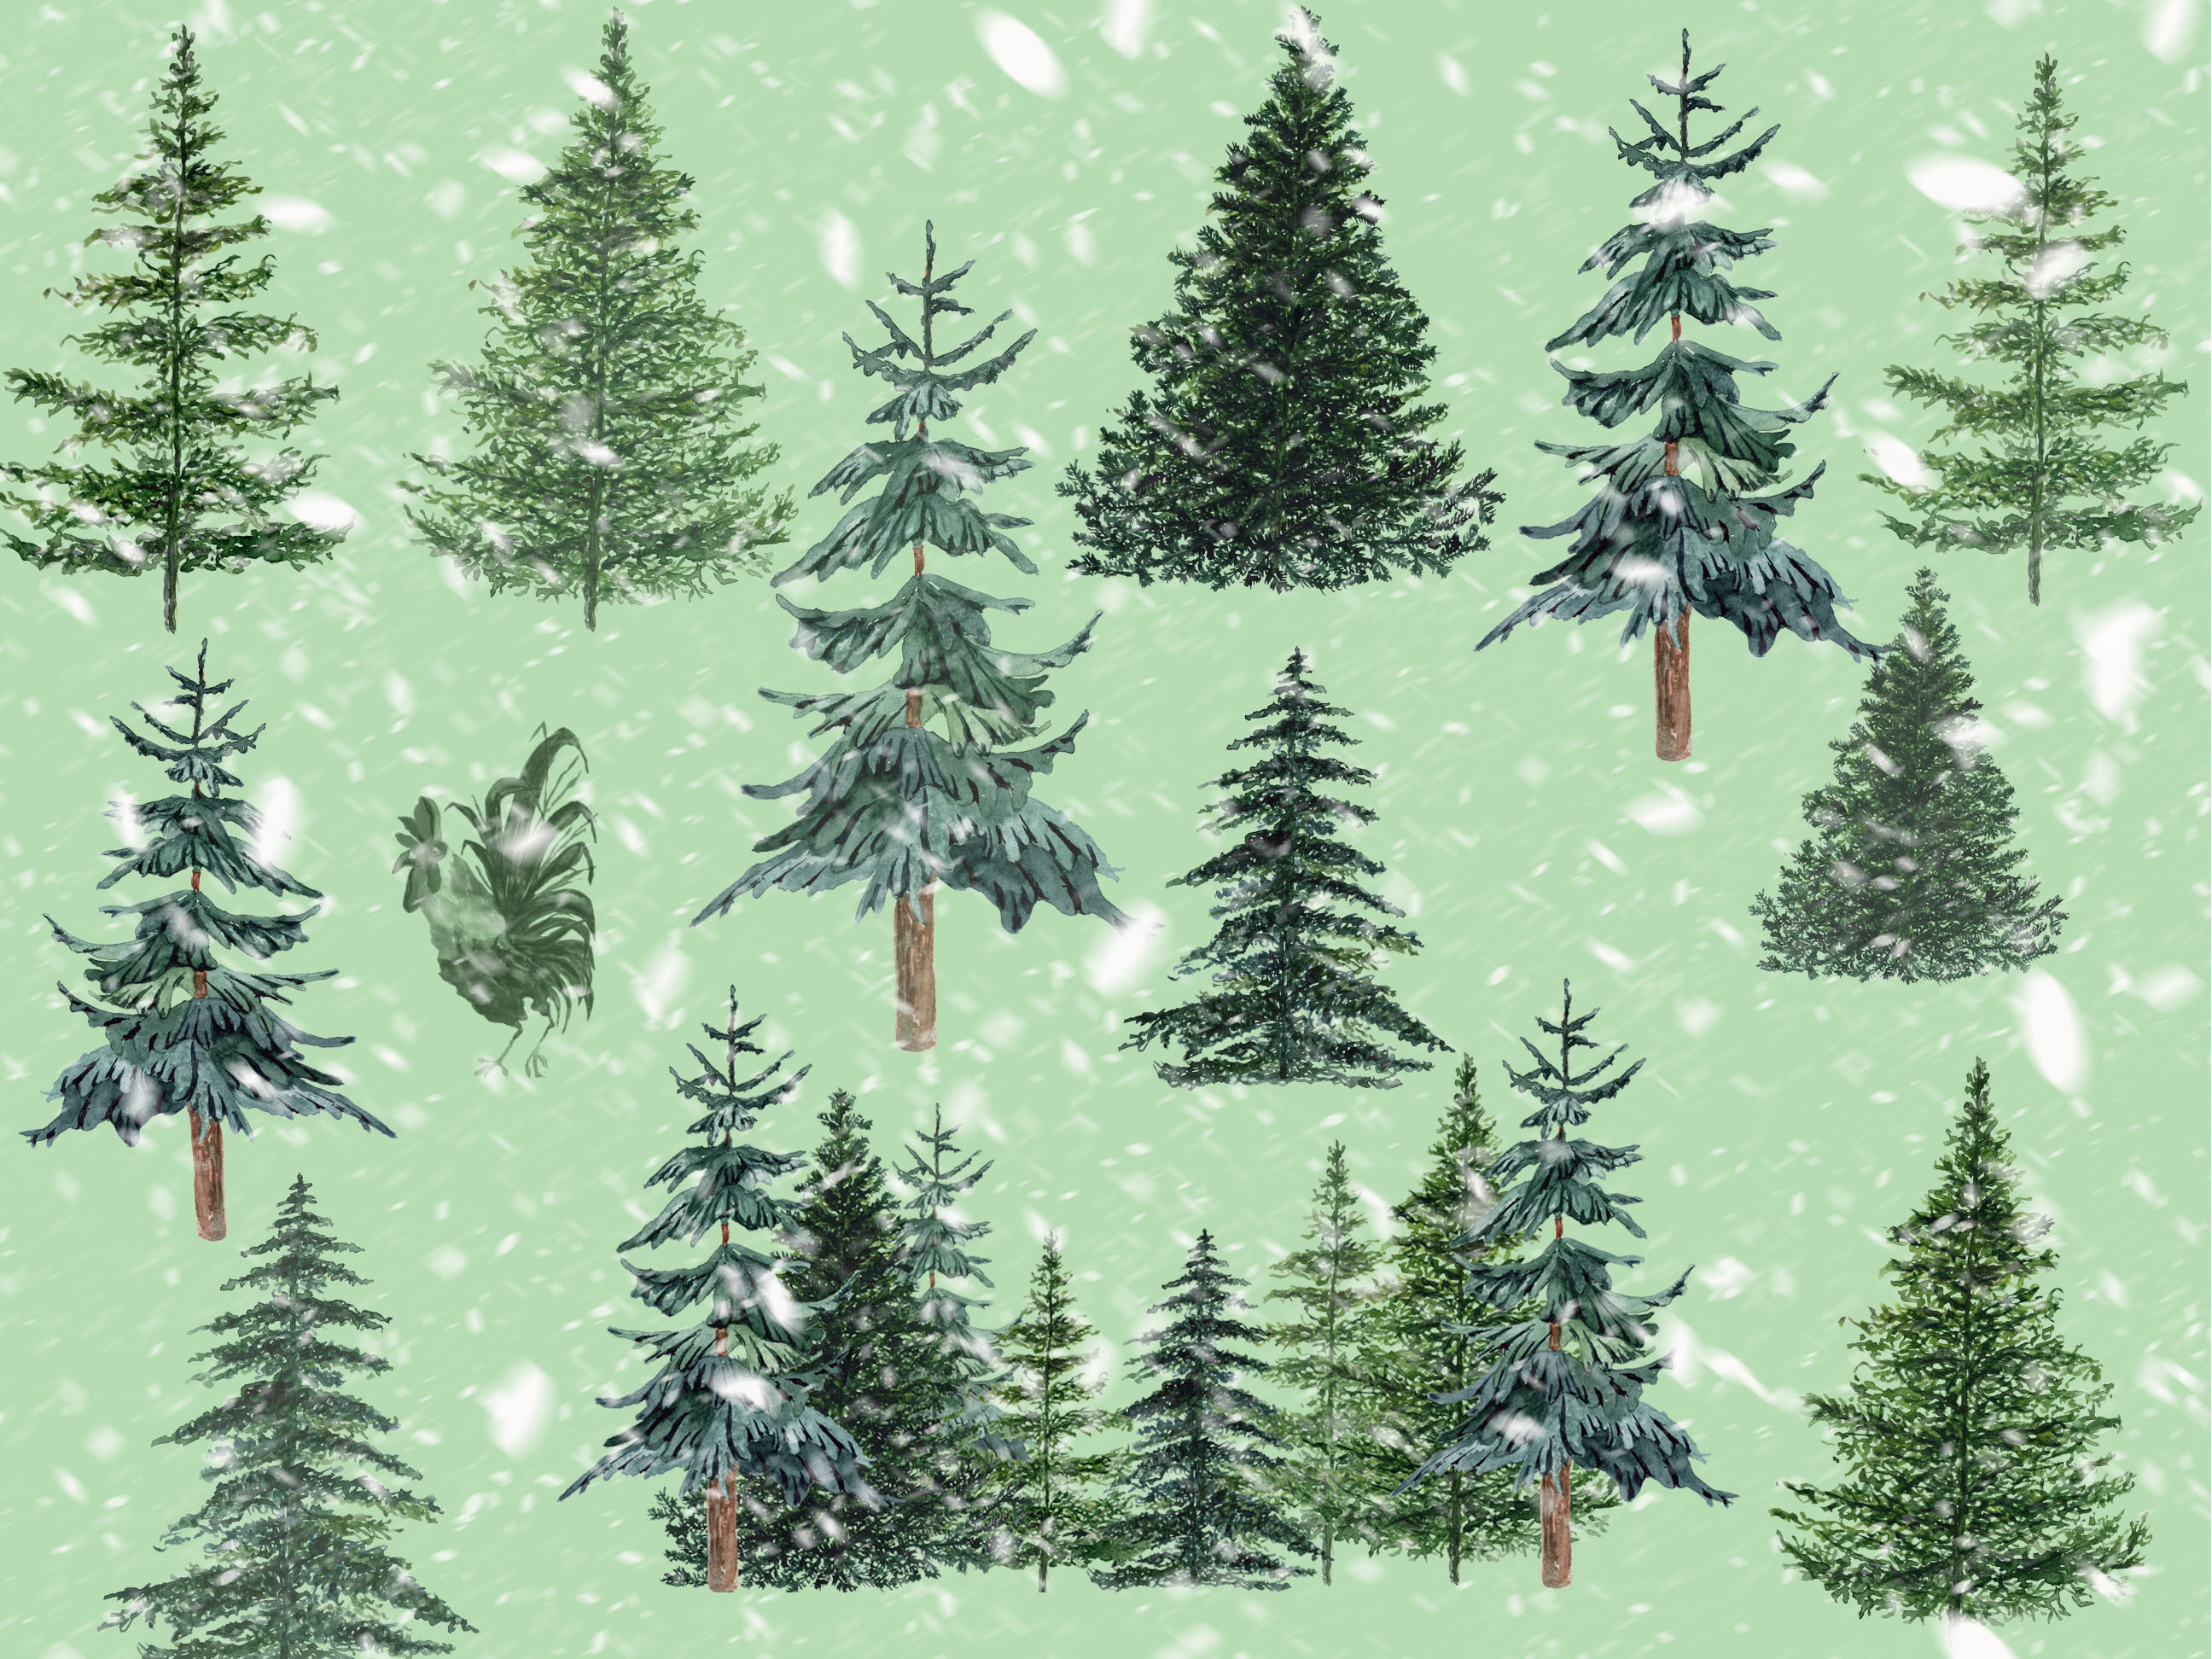 Conifers trees clipart example image 4